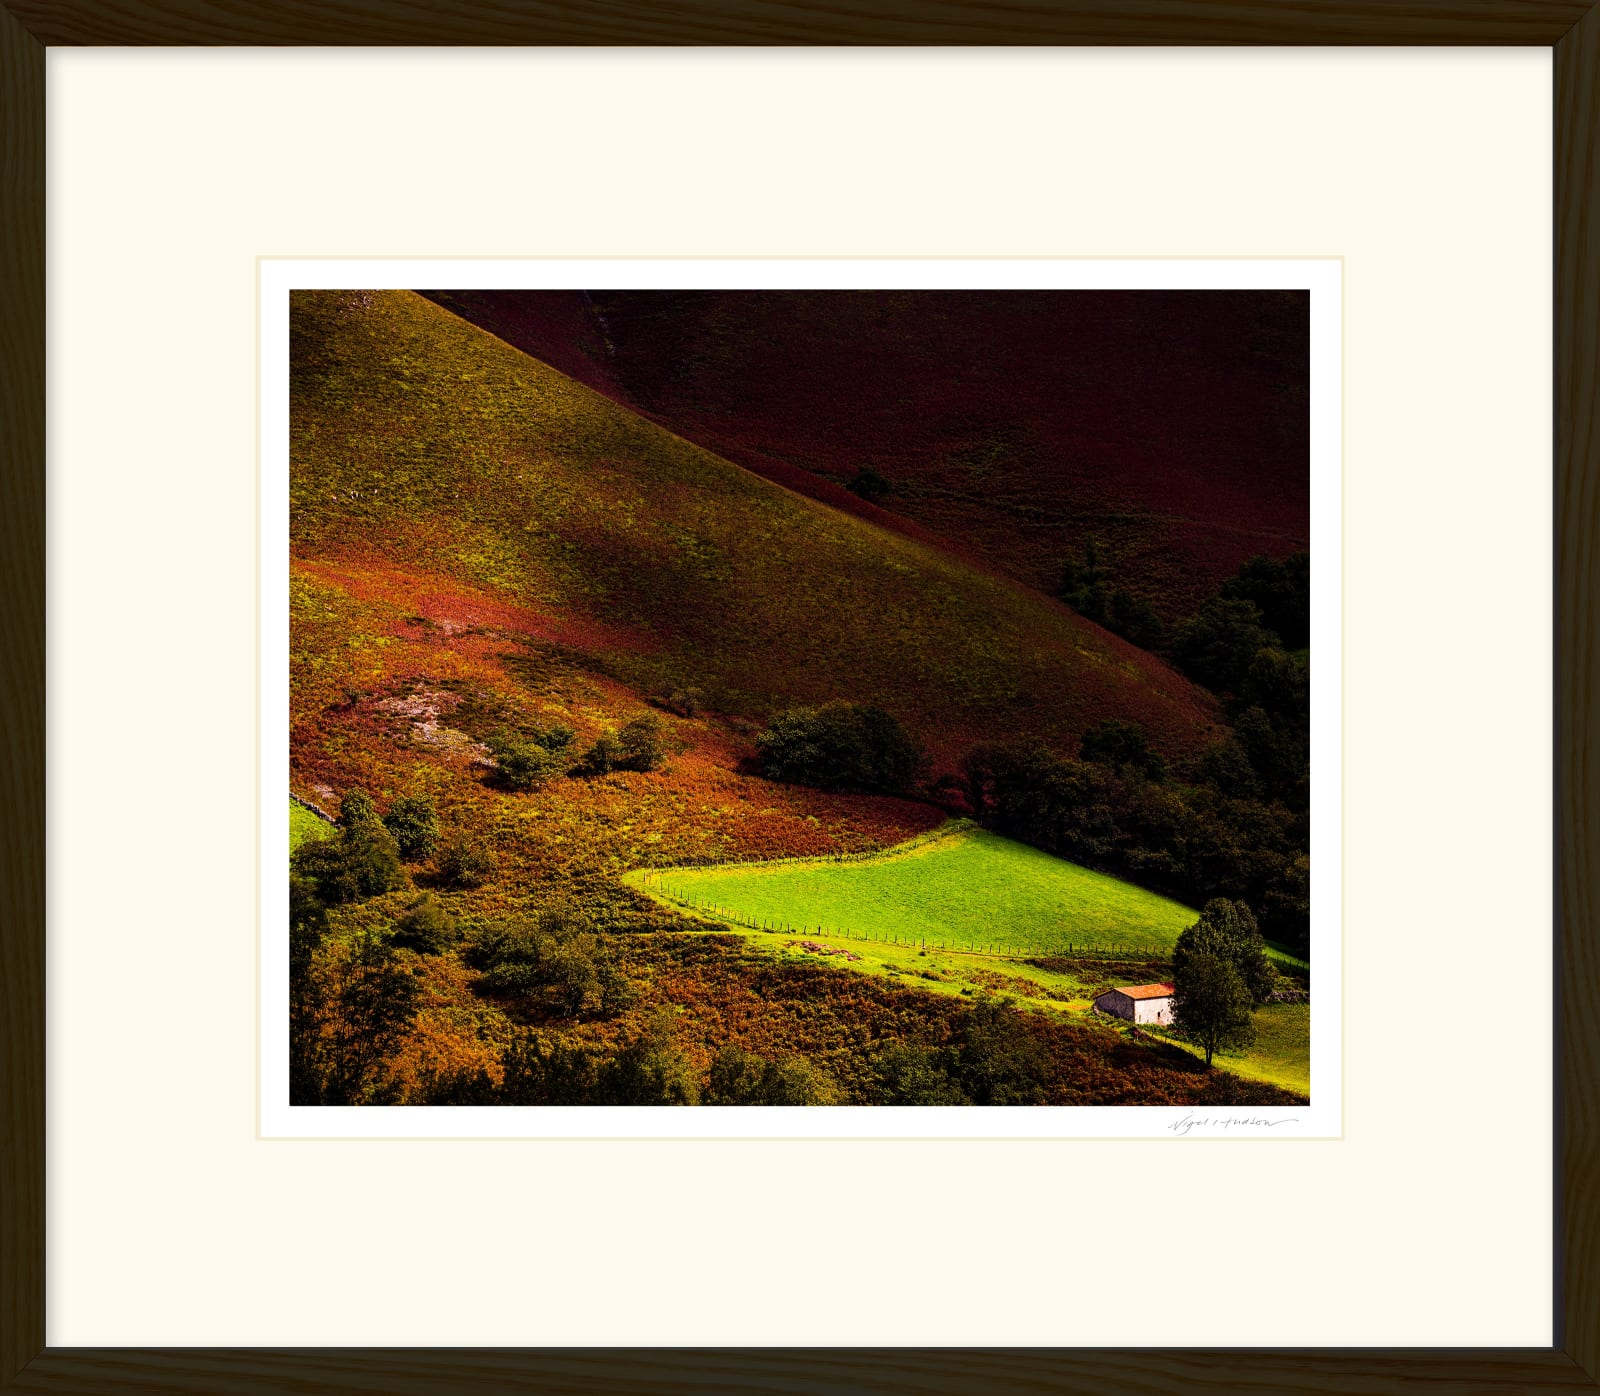 'EMERALD ENCLOSURE' Archival Pigment Print on Platinum Etching Fine Art Paper. Framed in an Oiled Walnut Cushion Frame and protected with crystal clear Water White Glass. Available in an edition of 3 in three sizes. Prices from £245.00 including first class courier delivery within five working days.